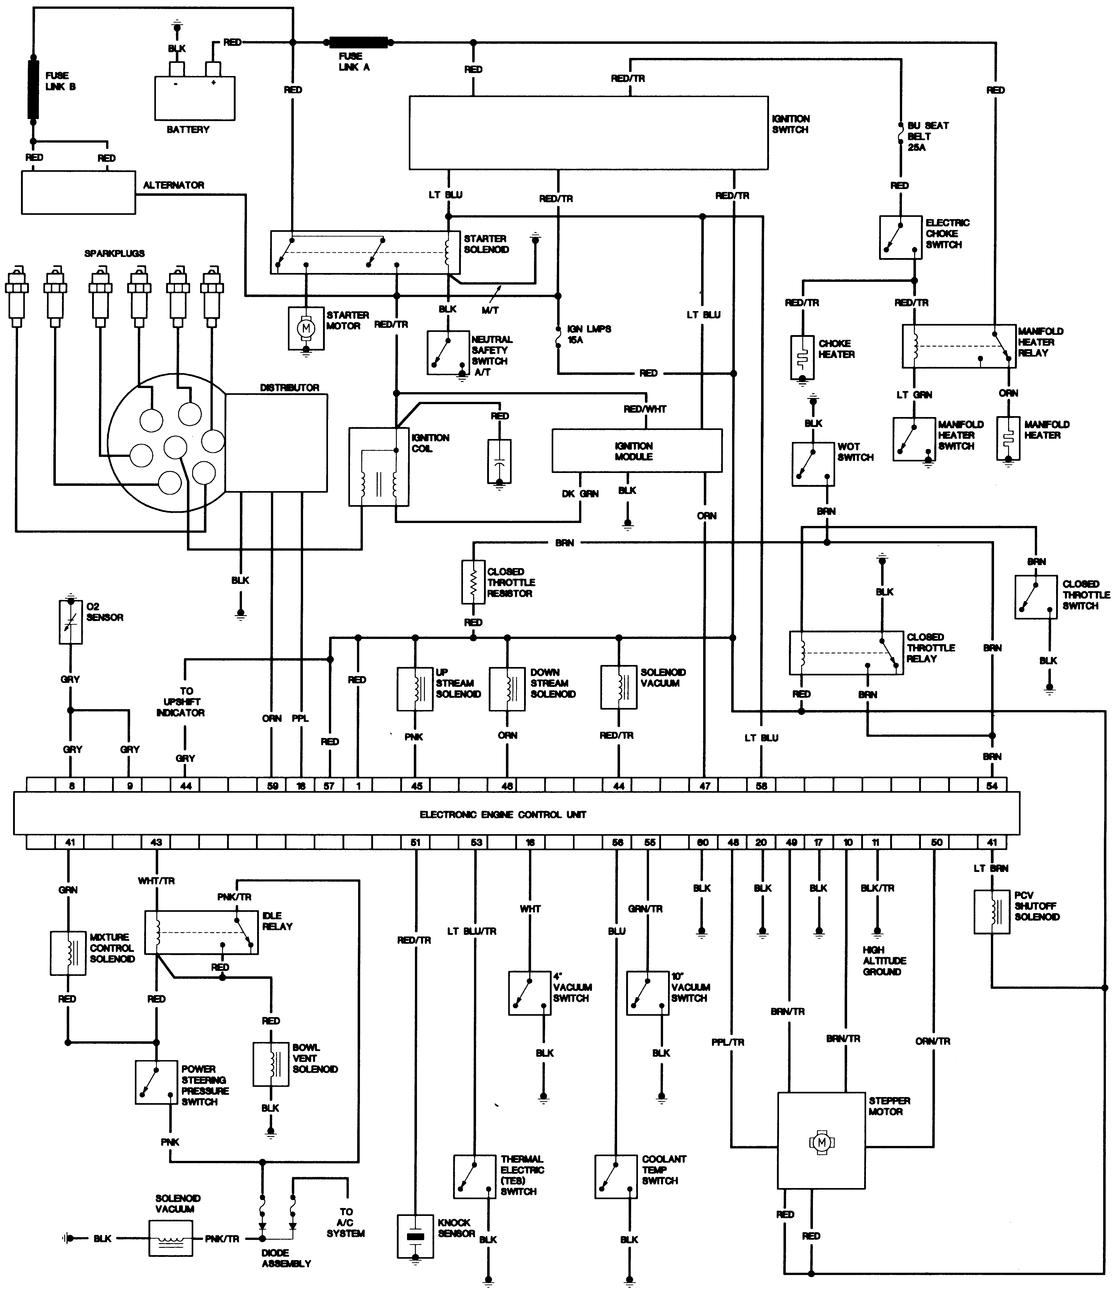 jeep cj7 wiring diagram 1980 jeep cj7 wiring diagram